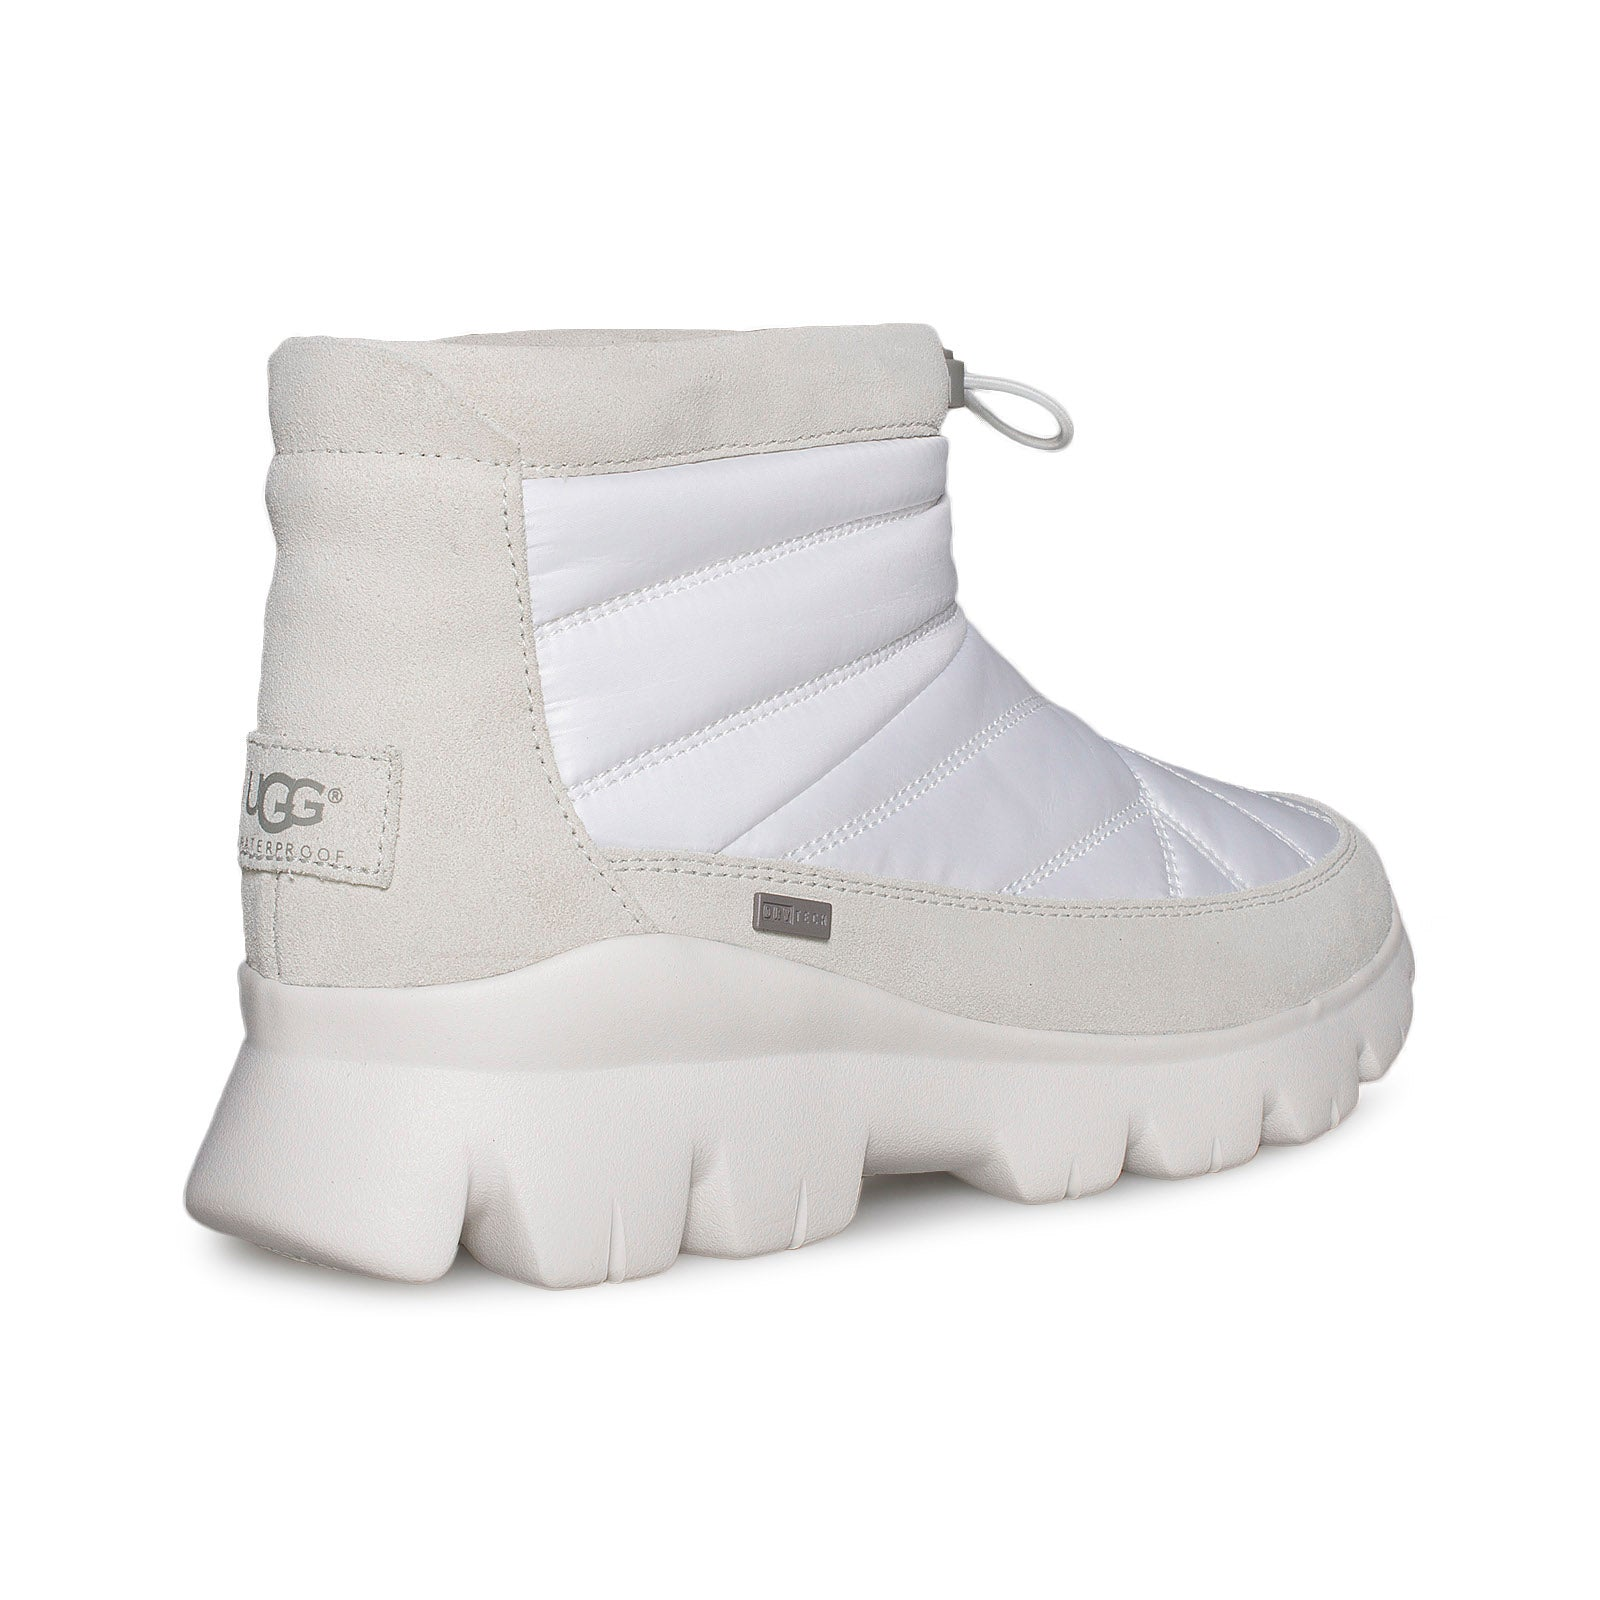 4b65745367d UGG Centara White Boot - Women's